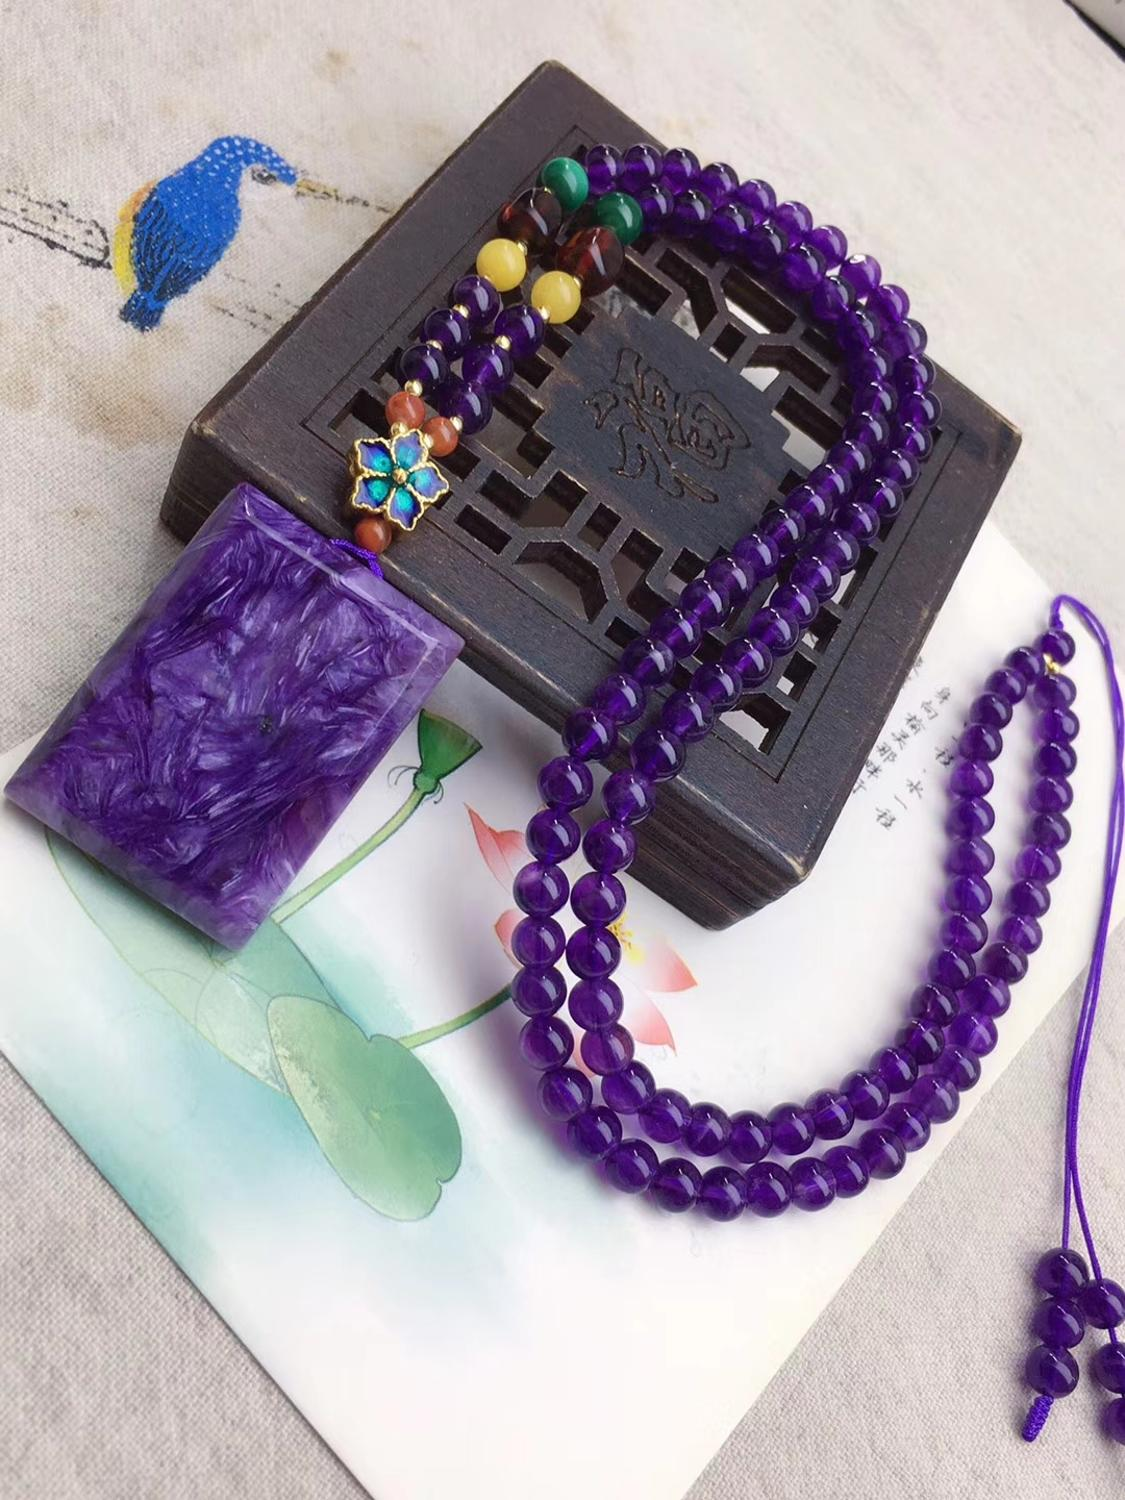 100% Natural Purple Charoite Gemstone Rectangle Women Men Pendant 36x26x7mm From Russian Charm Beads Necklace Gift AAAAA